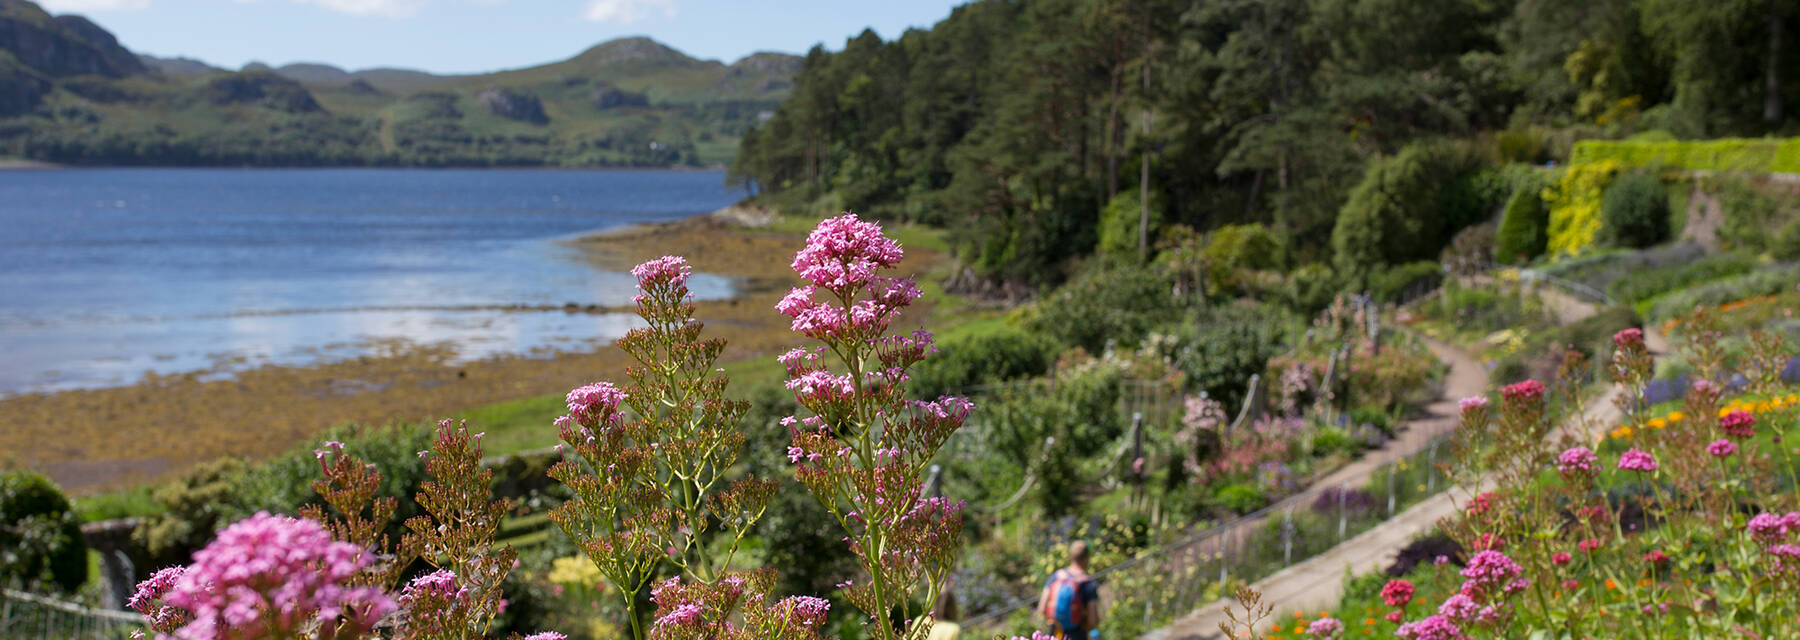 The walled garden at Inverewe. There are pink flowers in the foreground and Loch Ewe to the left of the shot with mountains in the background. Paths lead through the middle of the garden, and a man walks along one of them.